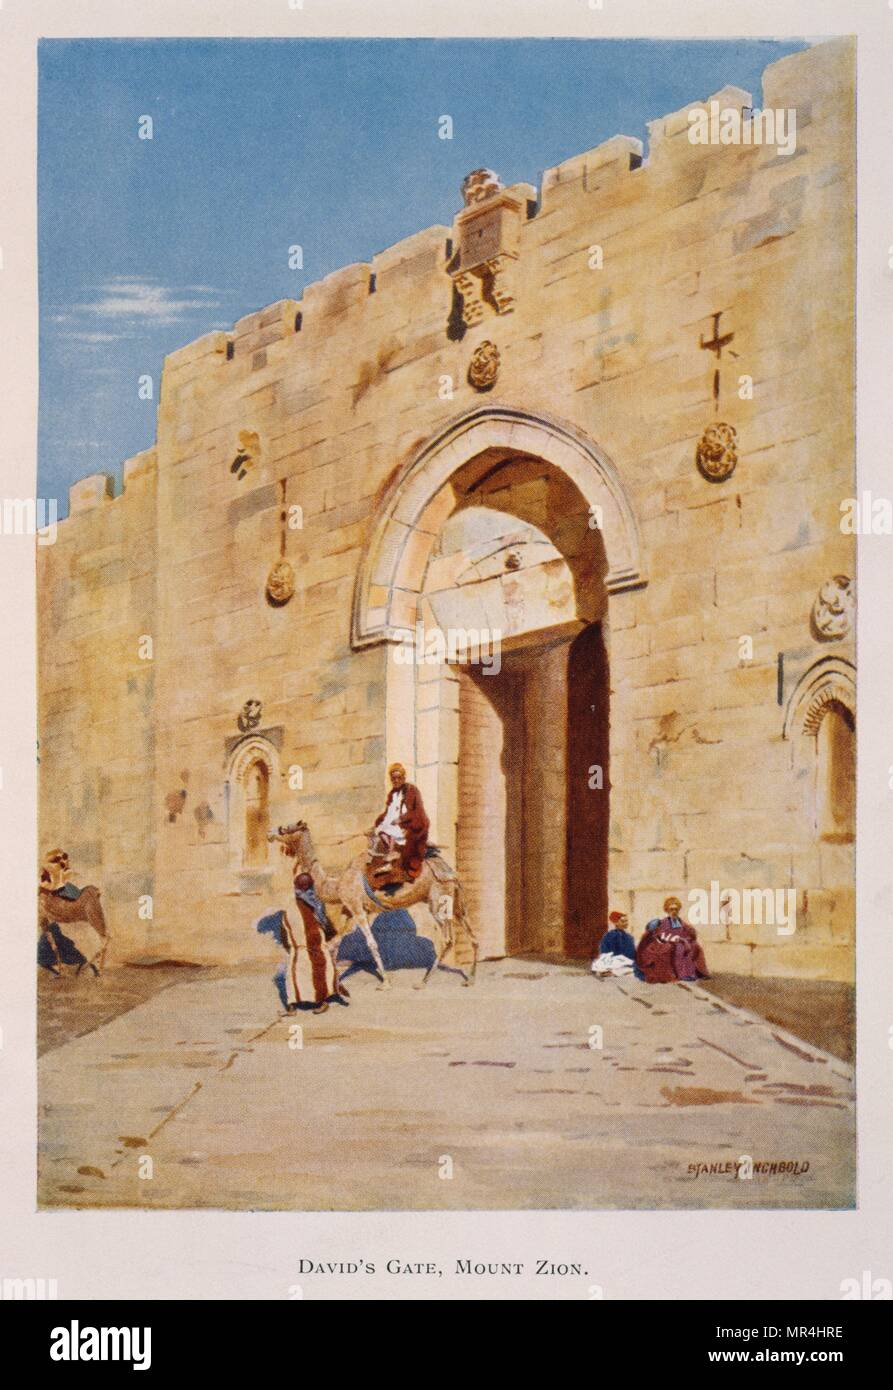 Watercolour by Stanley Inchbold, depicting the King David or Zion Gate, in Jerusalem, Palestine 1906 - Stock Image